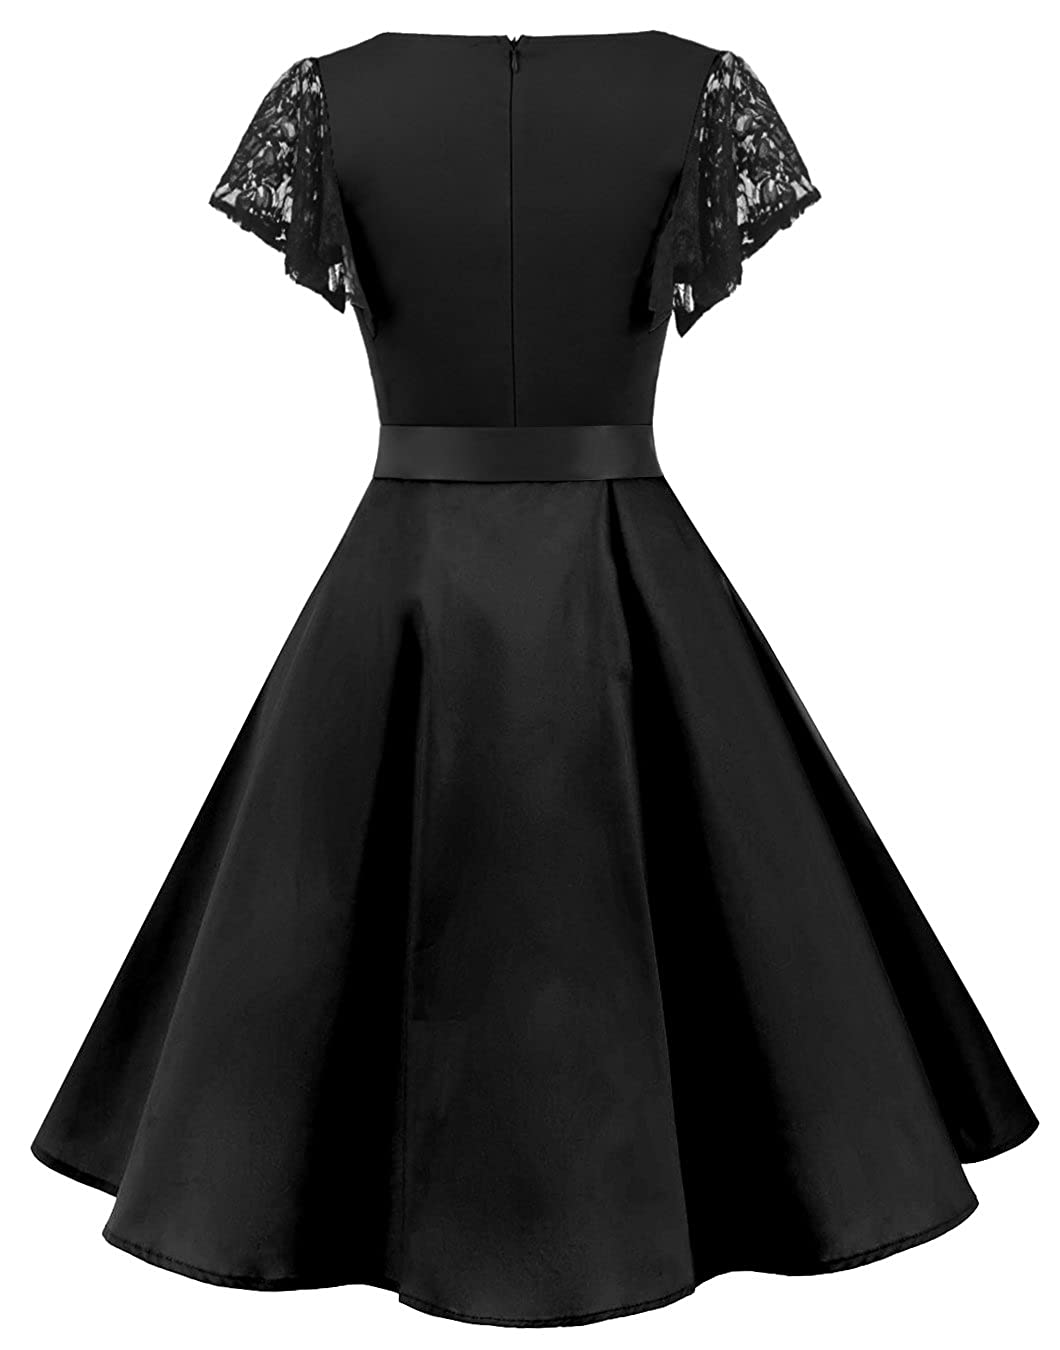 a104771859f Amazon.com  BeryLove Women s Vintage 50s Lace Sleeves Retro Rockabilly Swing  Coaktail Party Dresses  Clothing